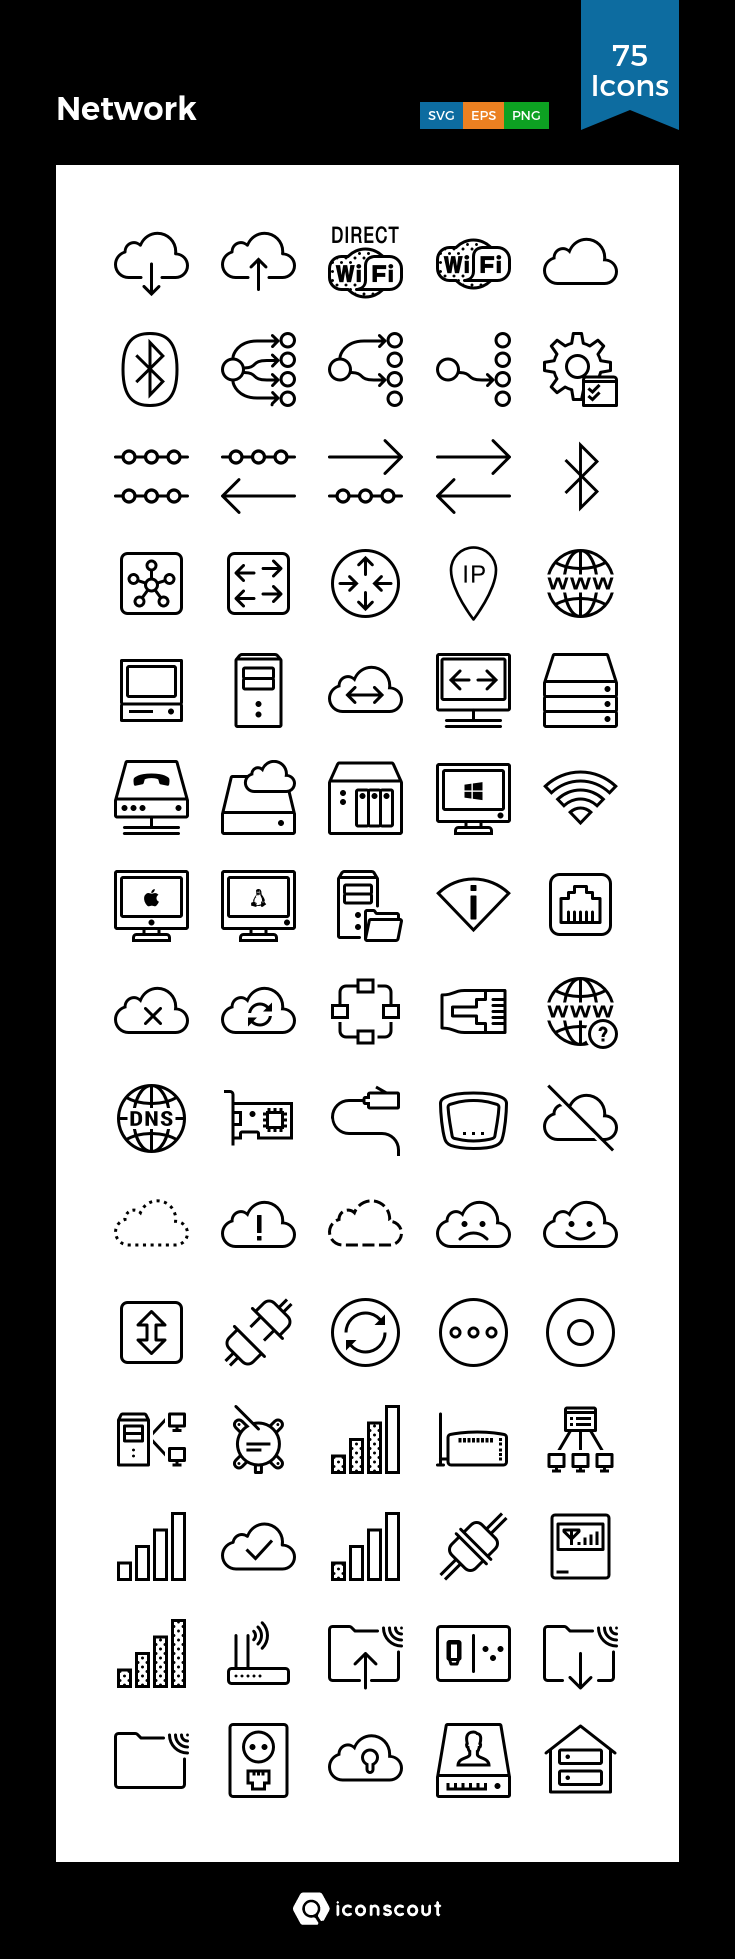 Download Network Icon Pack Available In Svg Png Eps Ai Icon Fonts Network Icon Icon Pack Icon